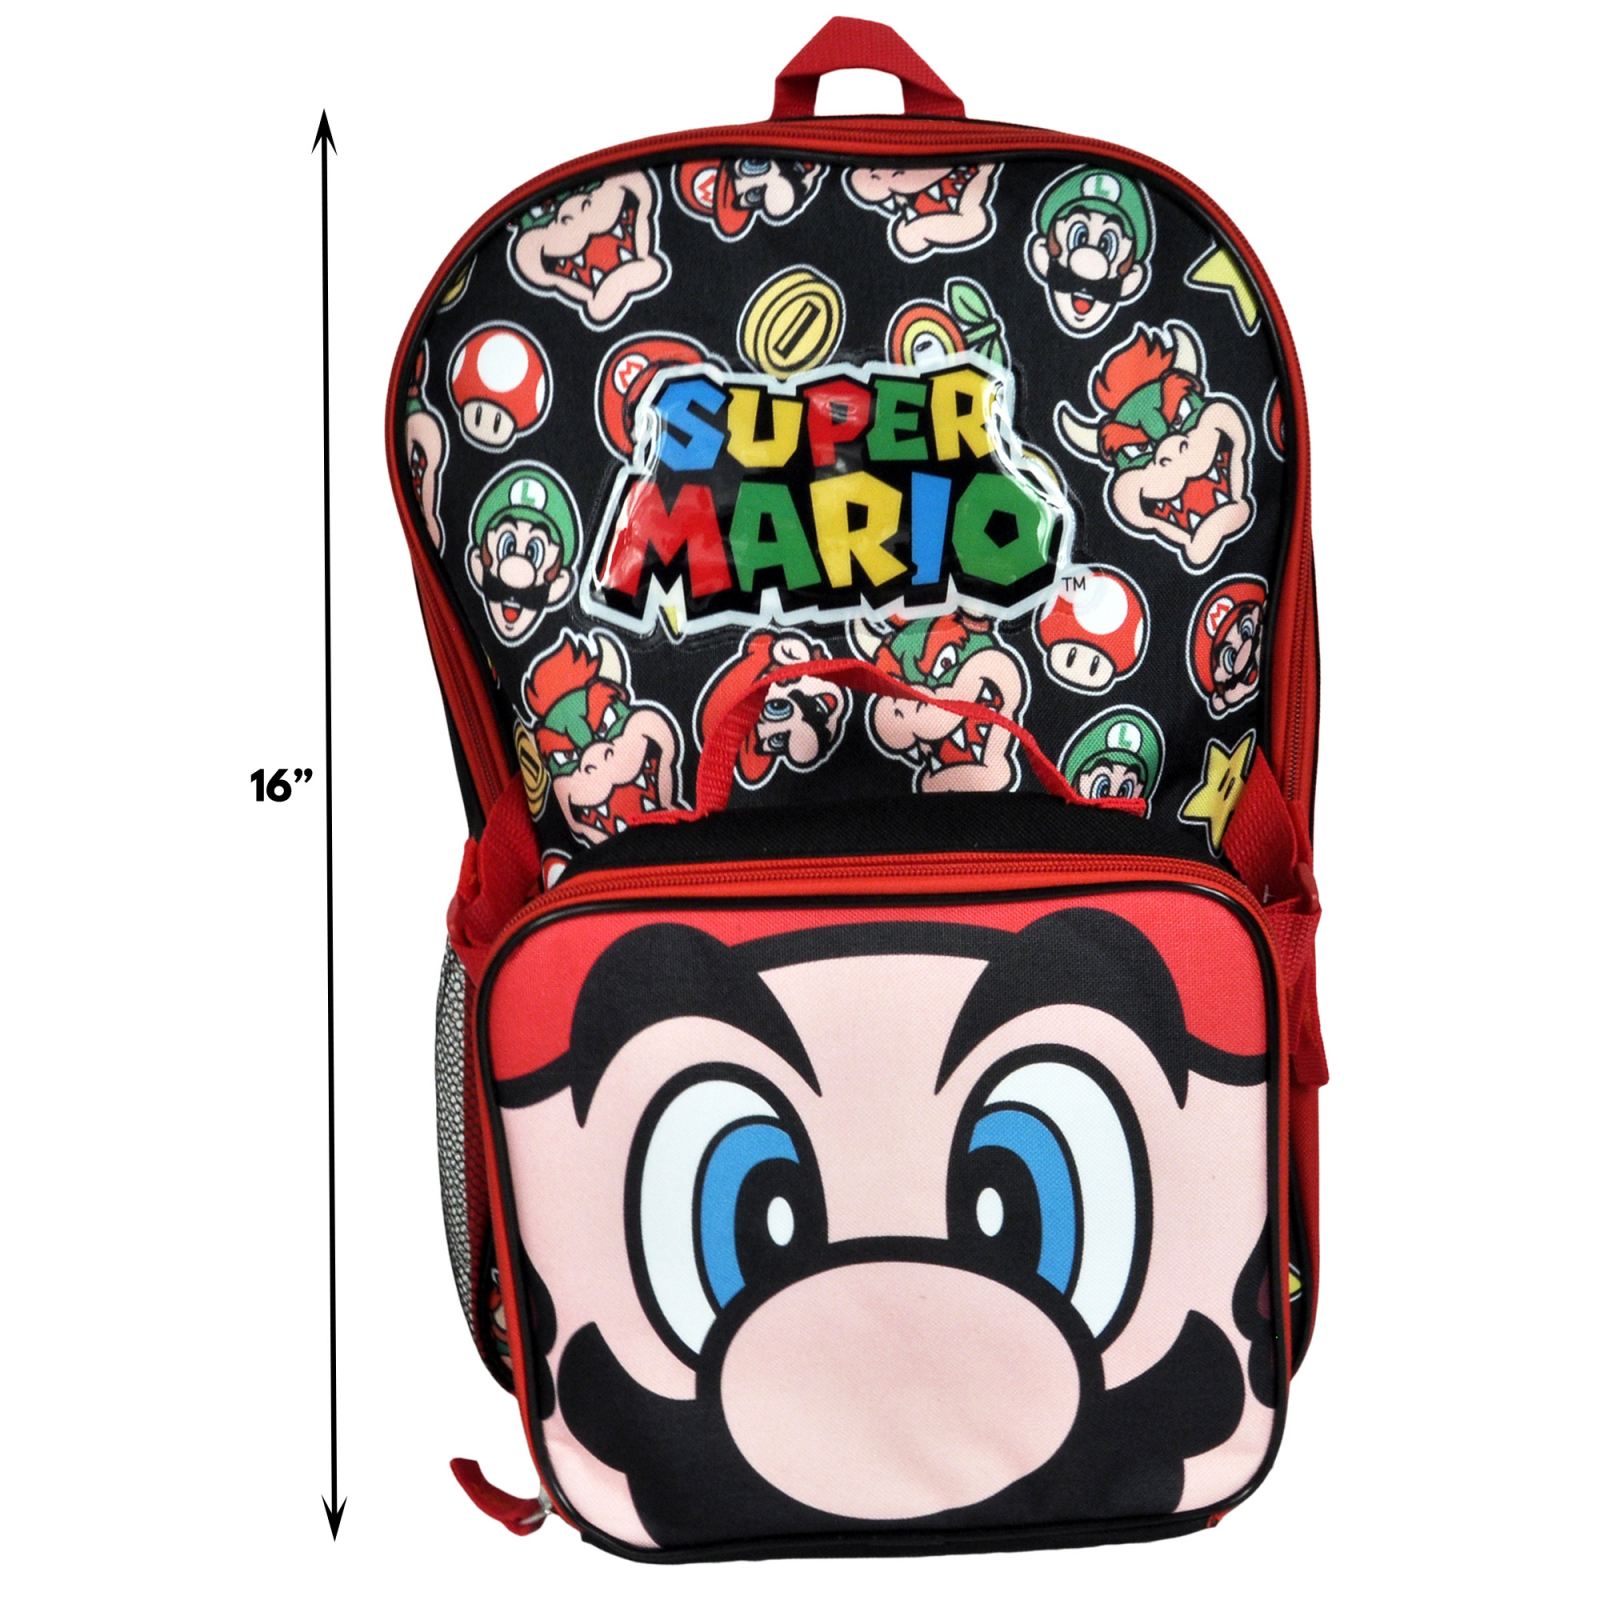 Super Mario Bros Backpack Scaling